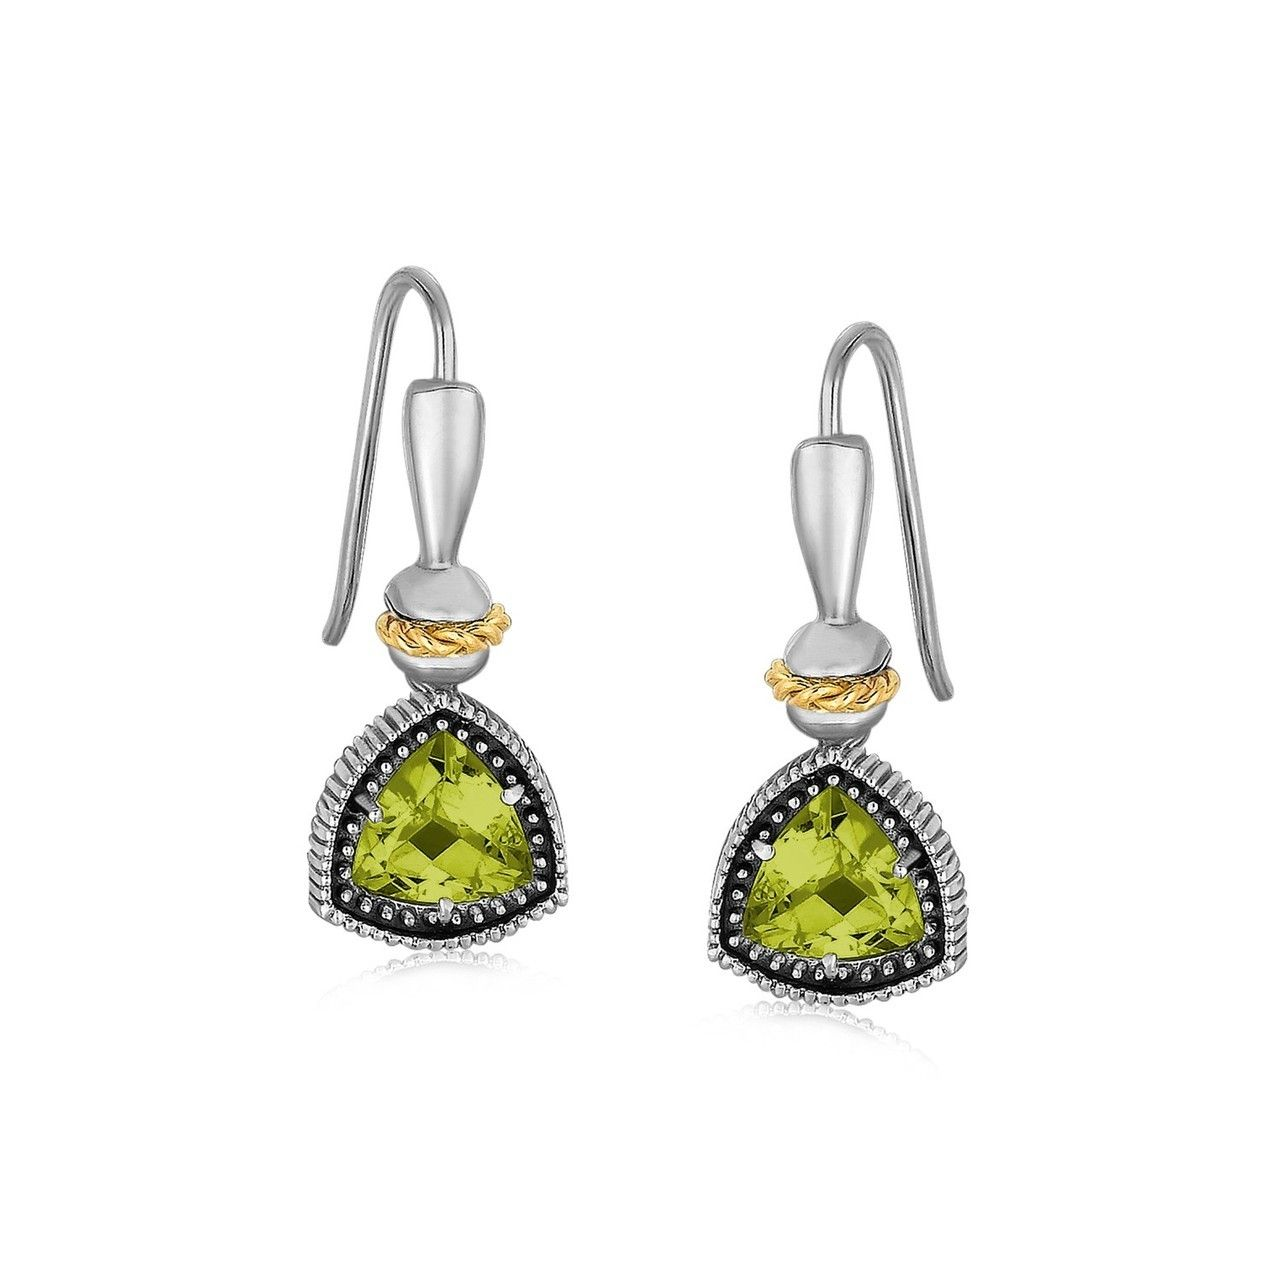 Uniquepedia.com - 18K Yellow Gold and Sterling Silver Trilliant Cut Peridot Drop Earrings, $224.00 (http://www.uniquepedia.com/18k-yellow-gold-and-sterling-silver-trilliant-cut-peridot-drop-earrings/)